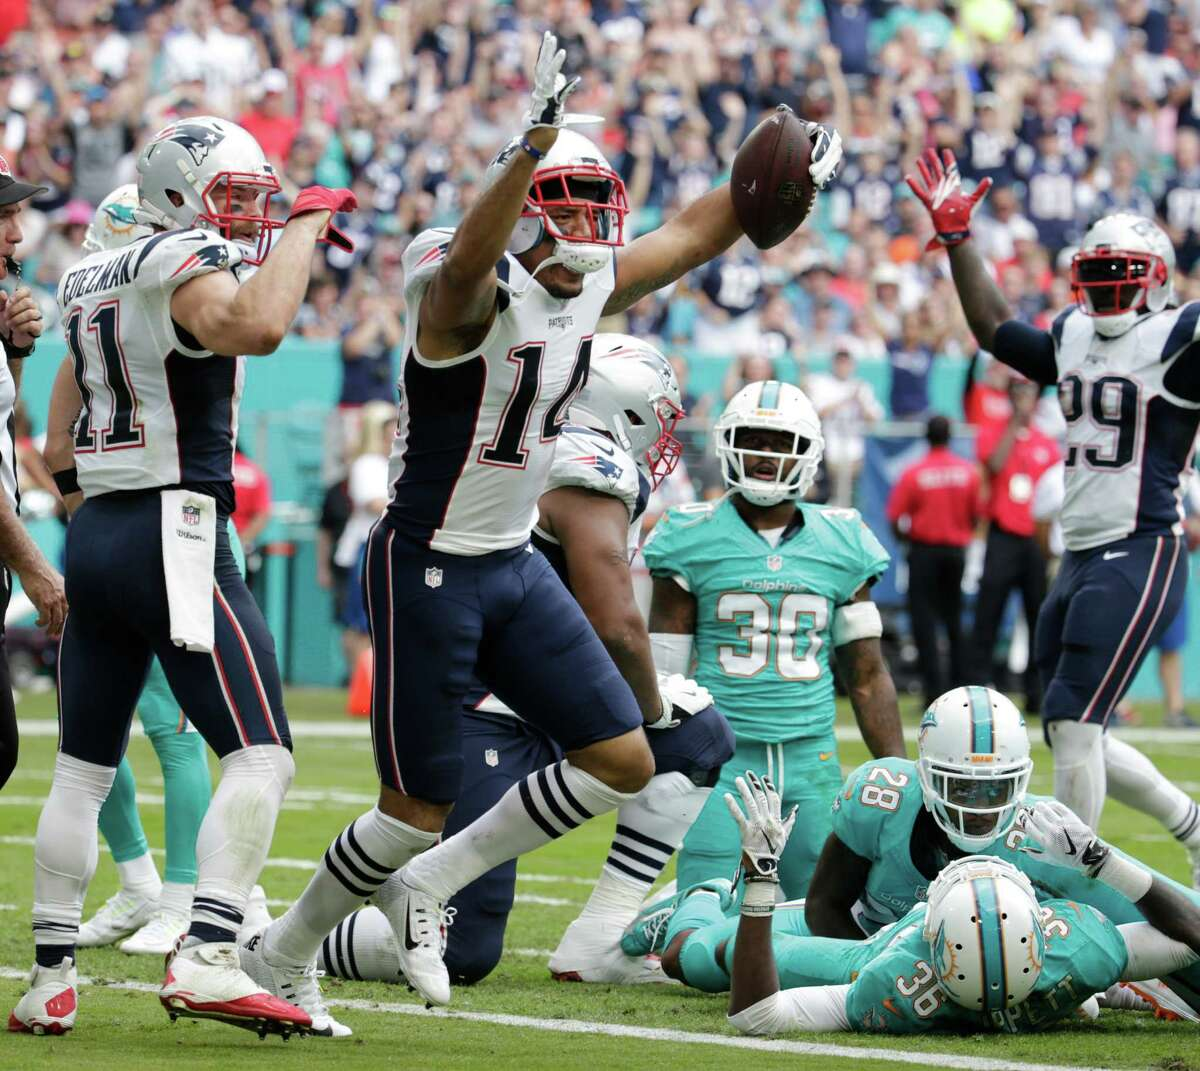 Michael Floyd has scored one touchdown in two games since joining the Patriots after being released by the Cardinals.